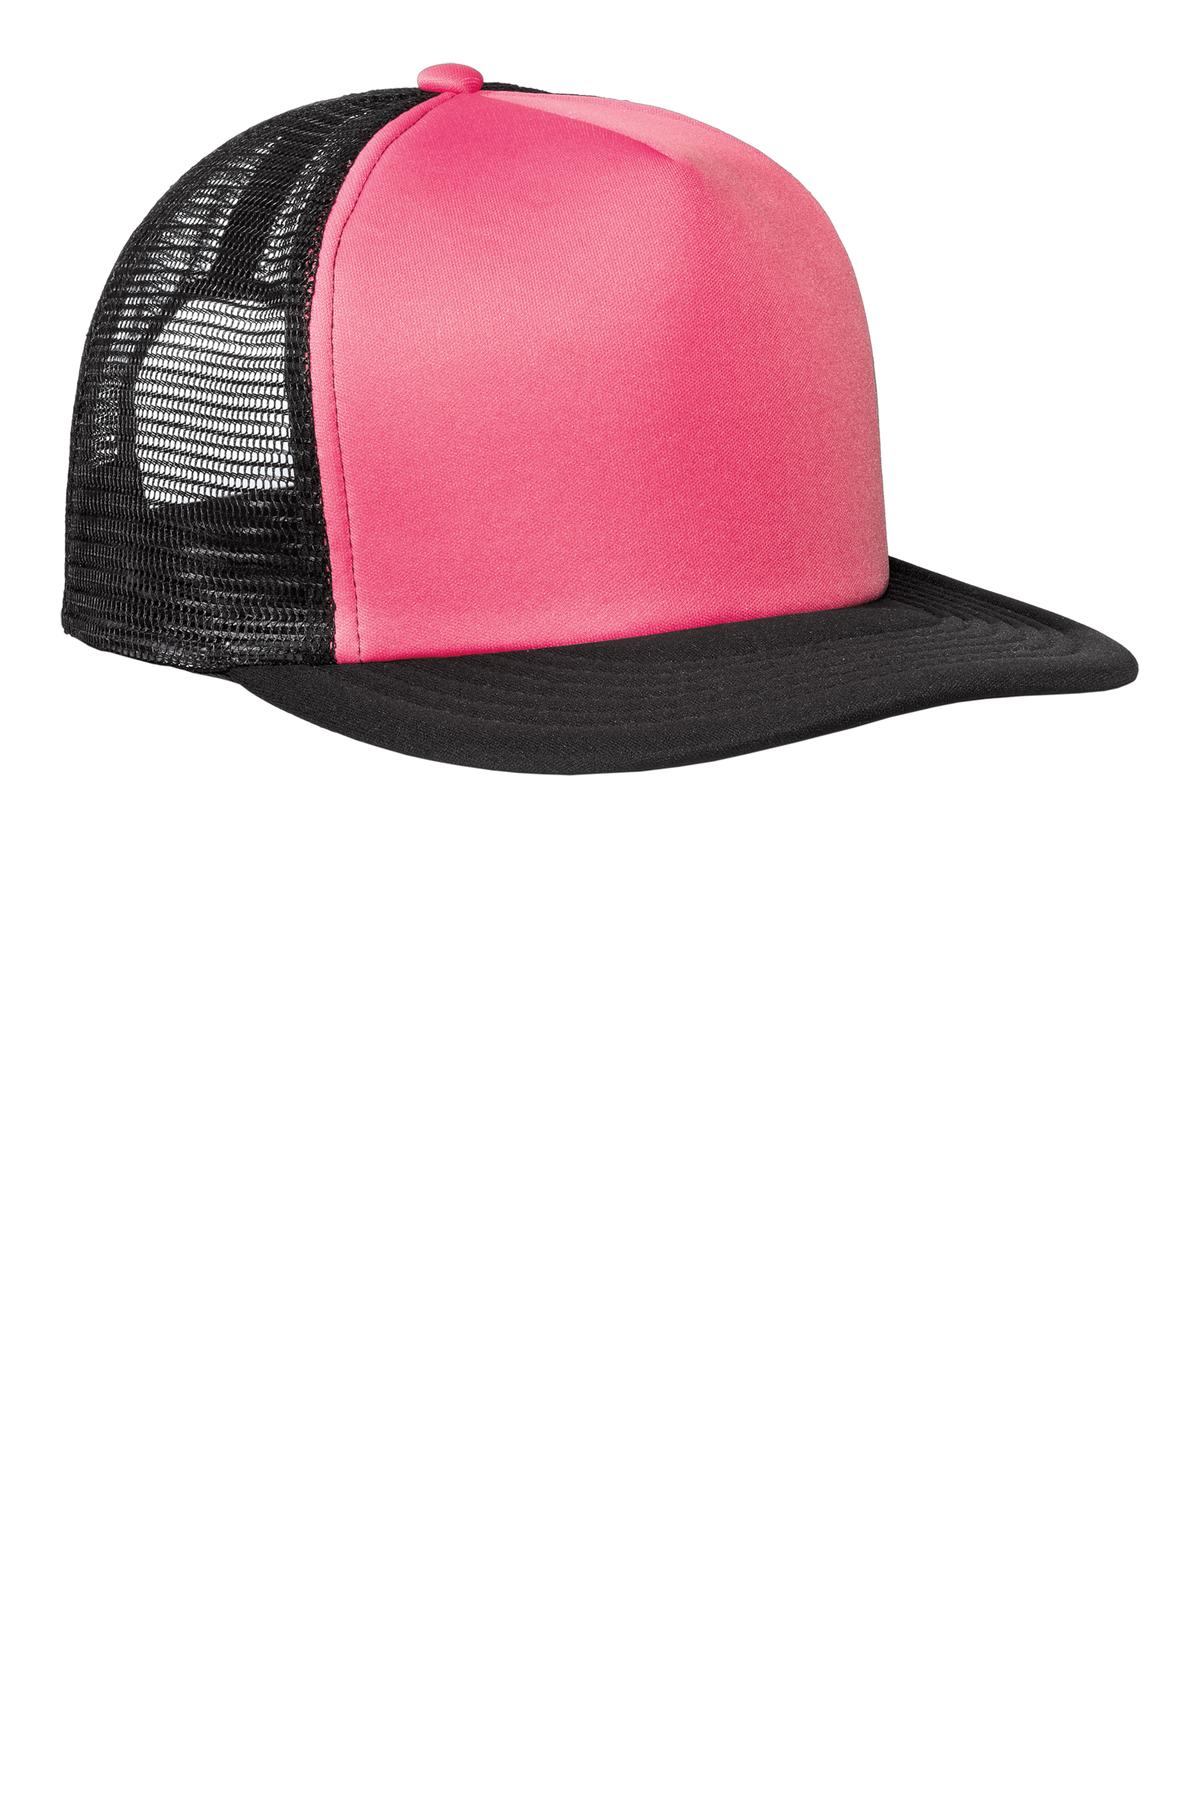 District ®  Flat Bill Snapback Trucker Cap. DT624 - Neon Pink